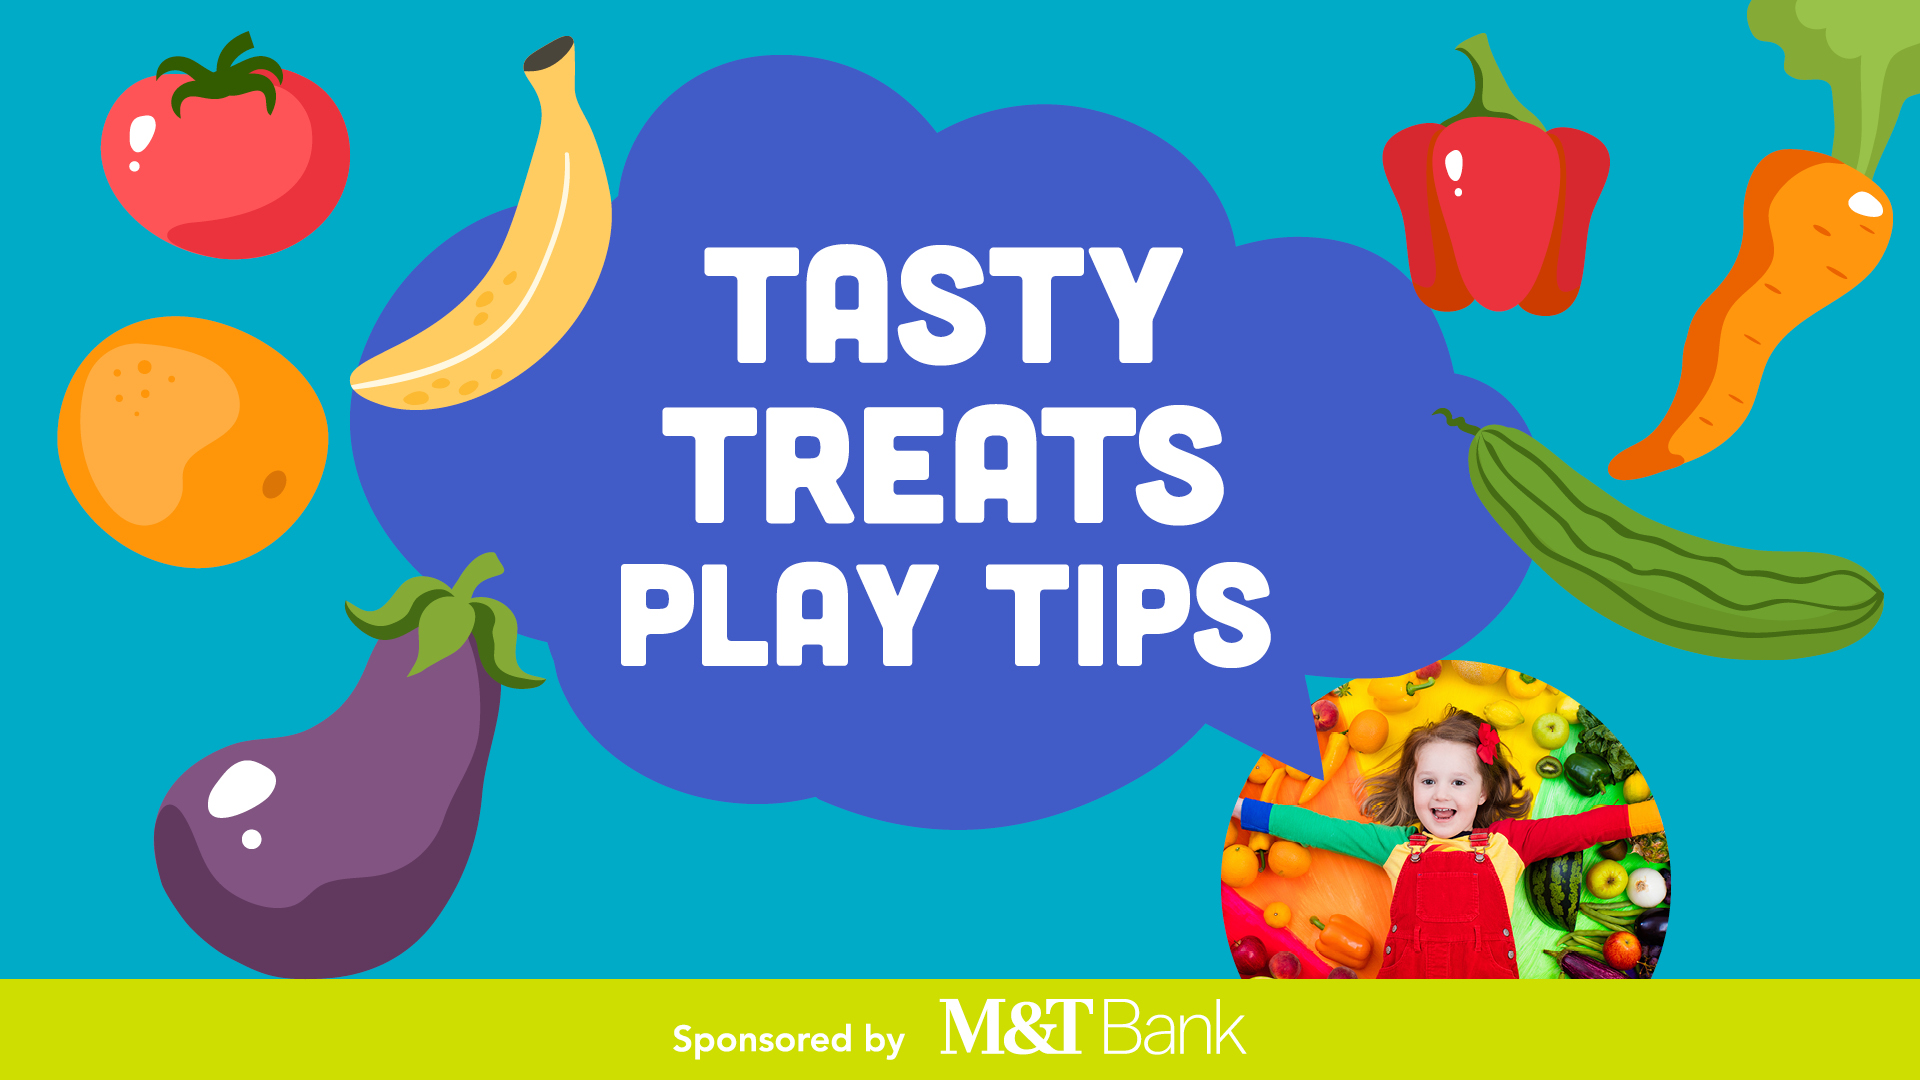 Tasty Treats Play Tips